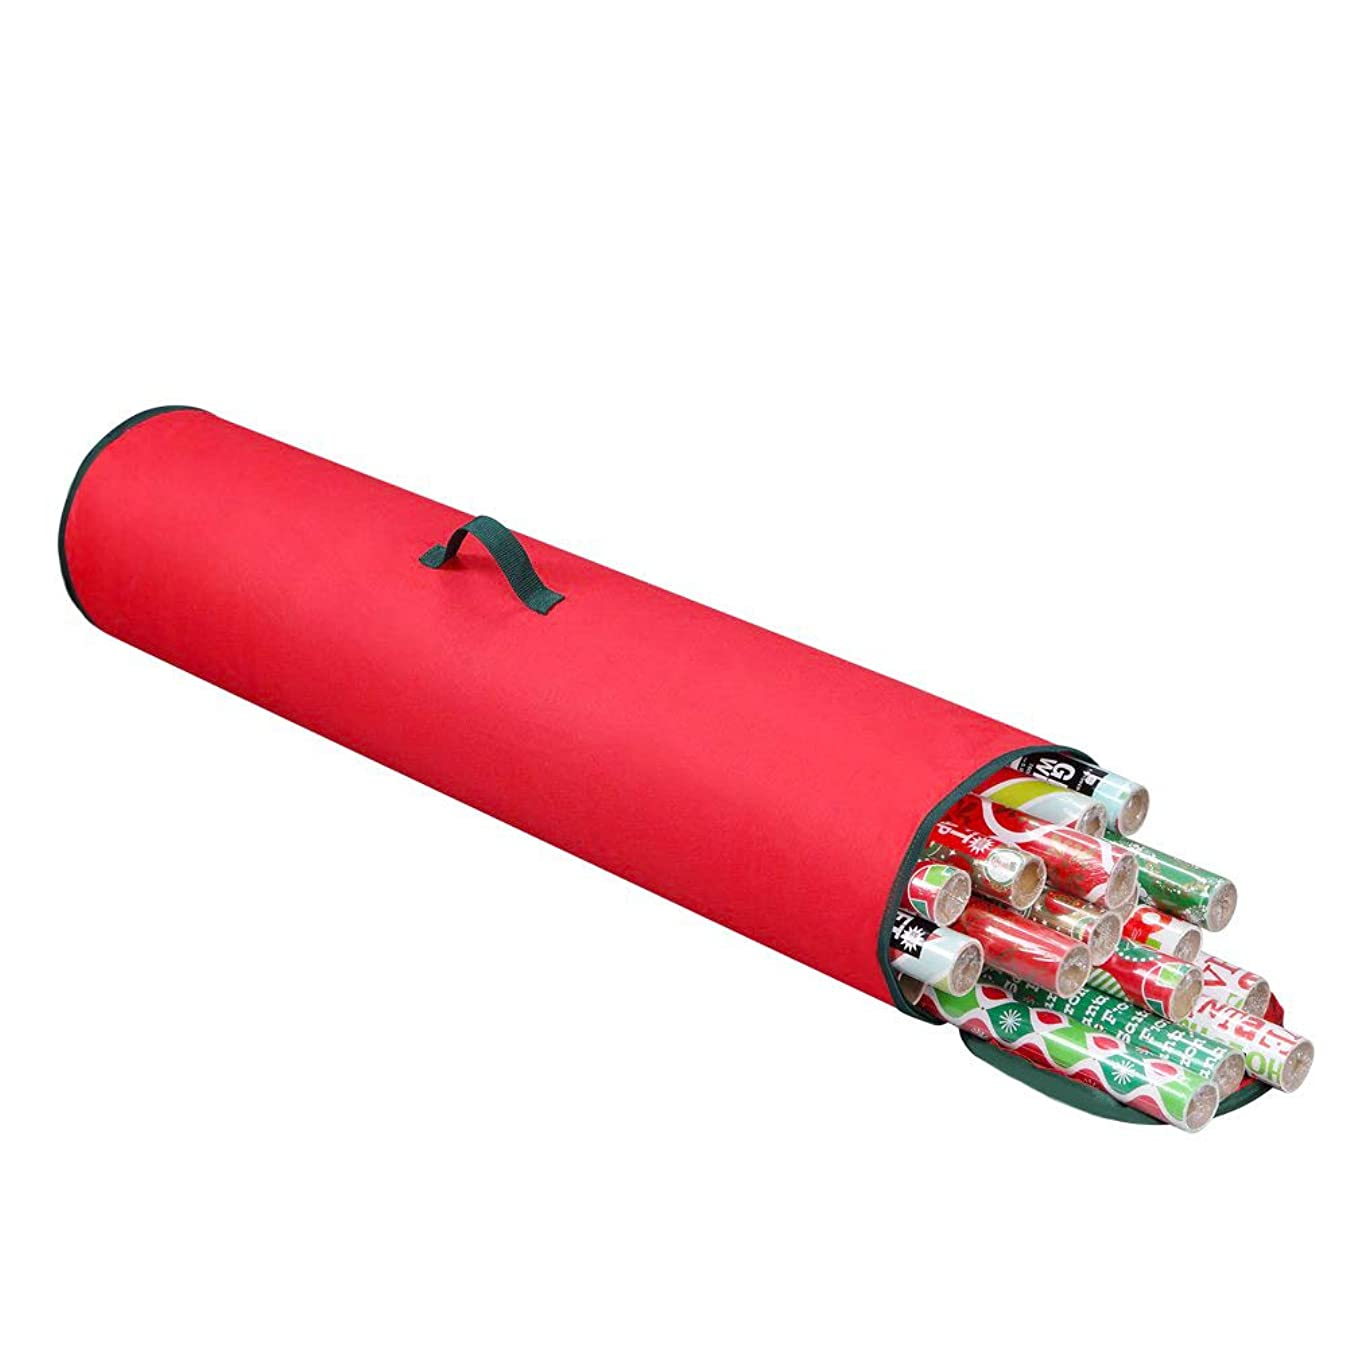 "Primode Gift Wrapping Storage Bag with Handle | Wrapping Paper Tube Bag for Storing Multiple Rolls of Gift Wrap, 40"" Length Constructed of Durable 600D Oxford Material (Red)"